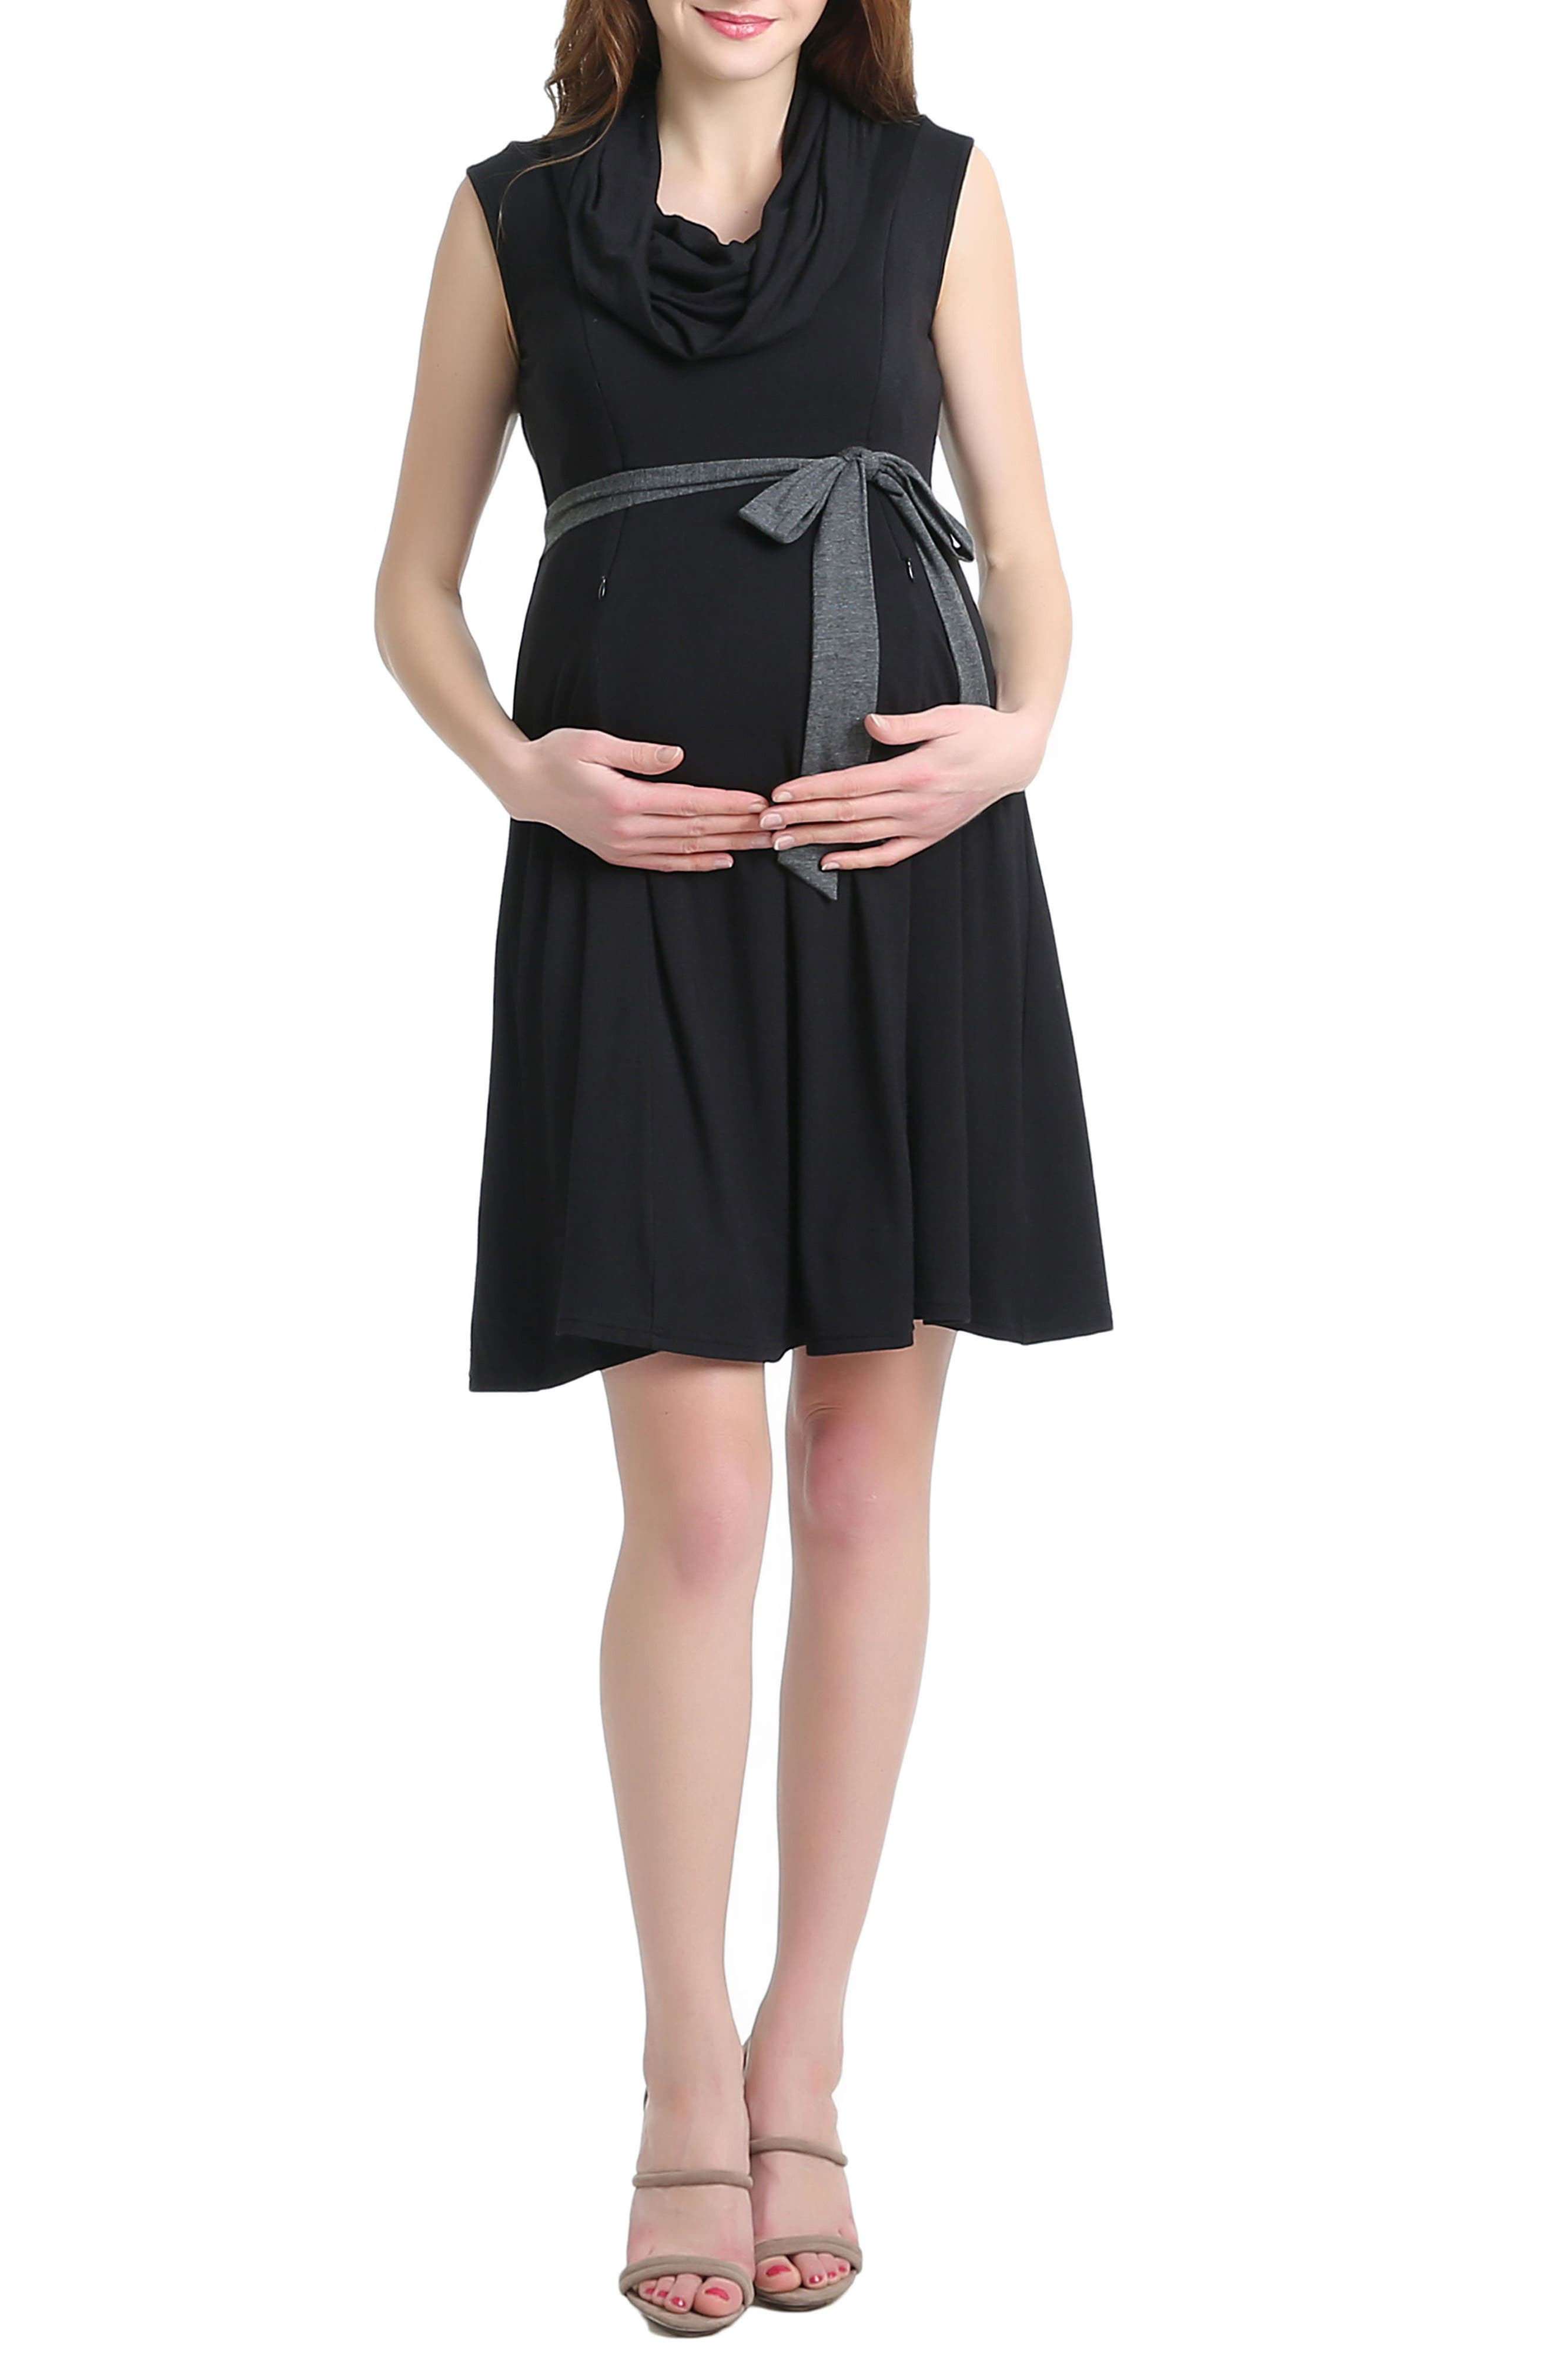 Megan Cowl Neck Maternity/Nursing Dress,                         Main,                         color, 001